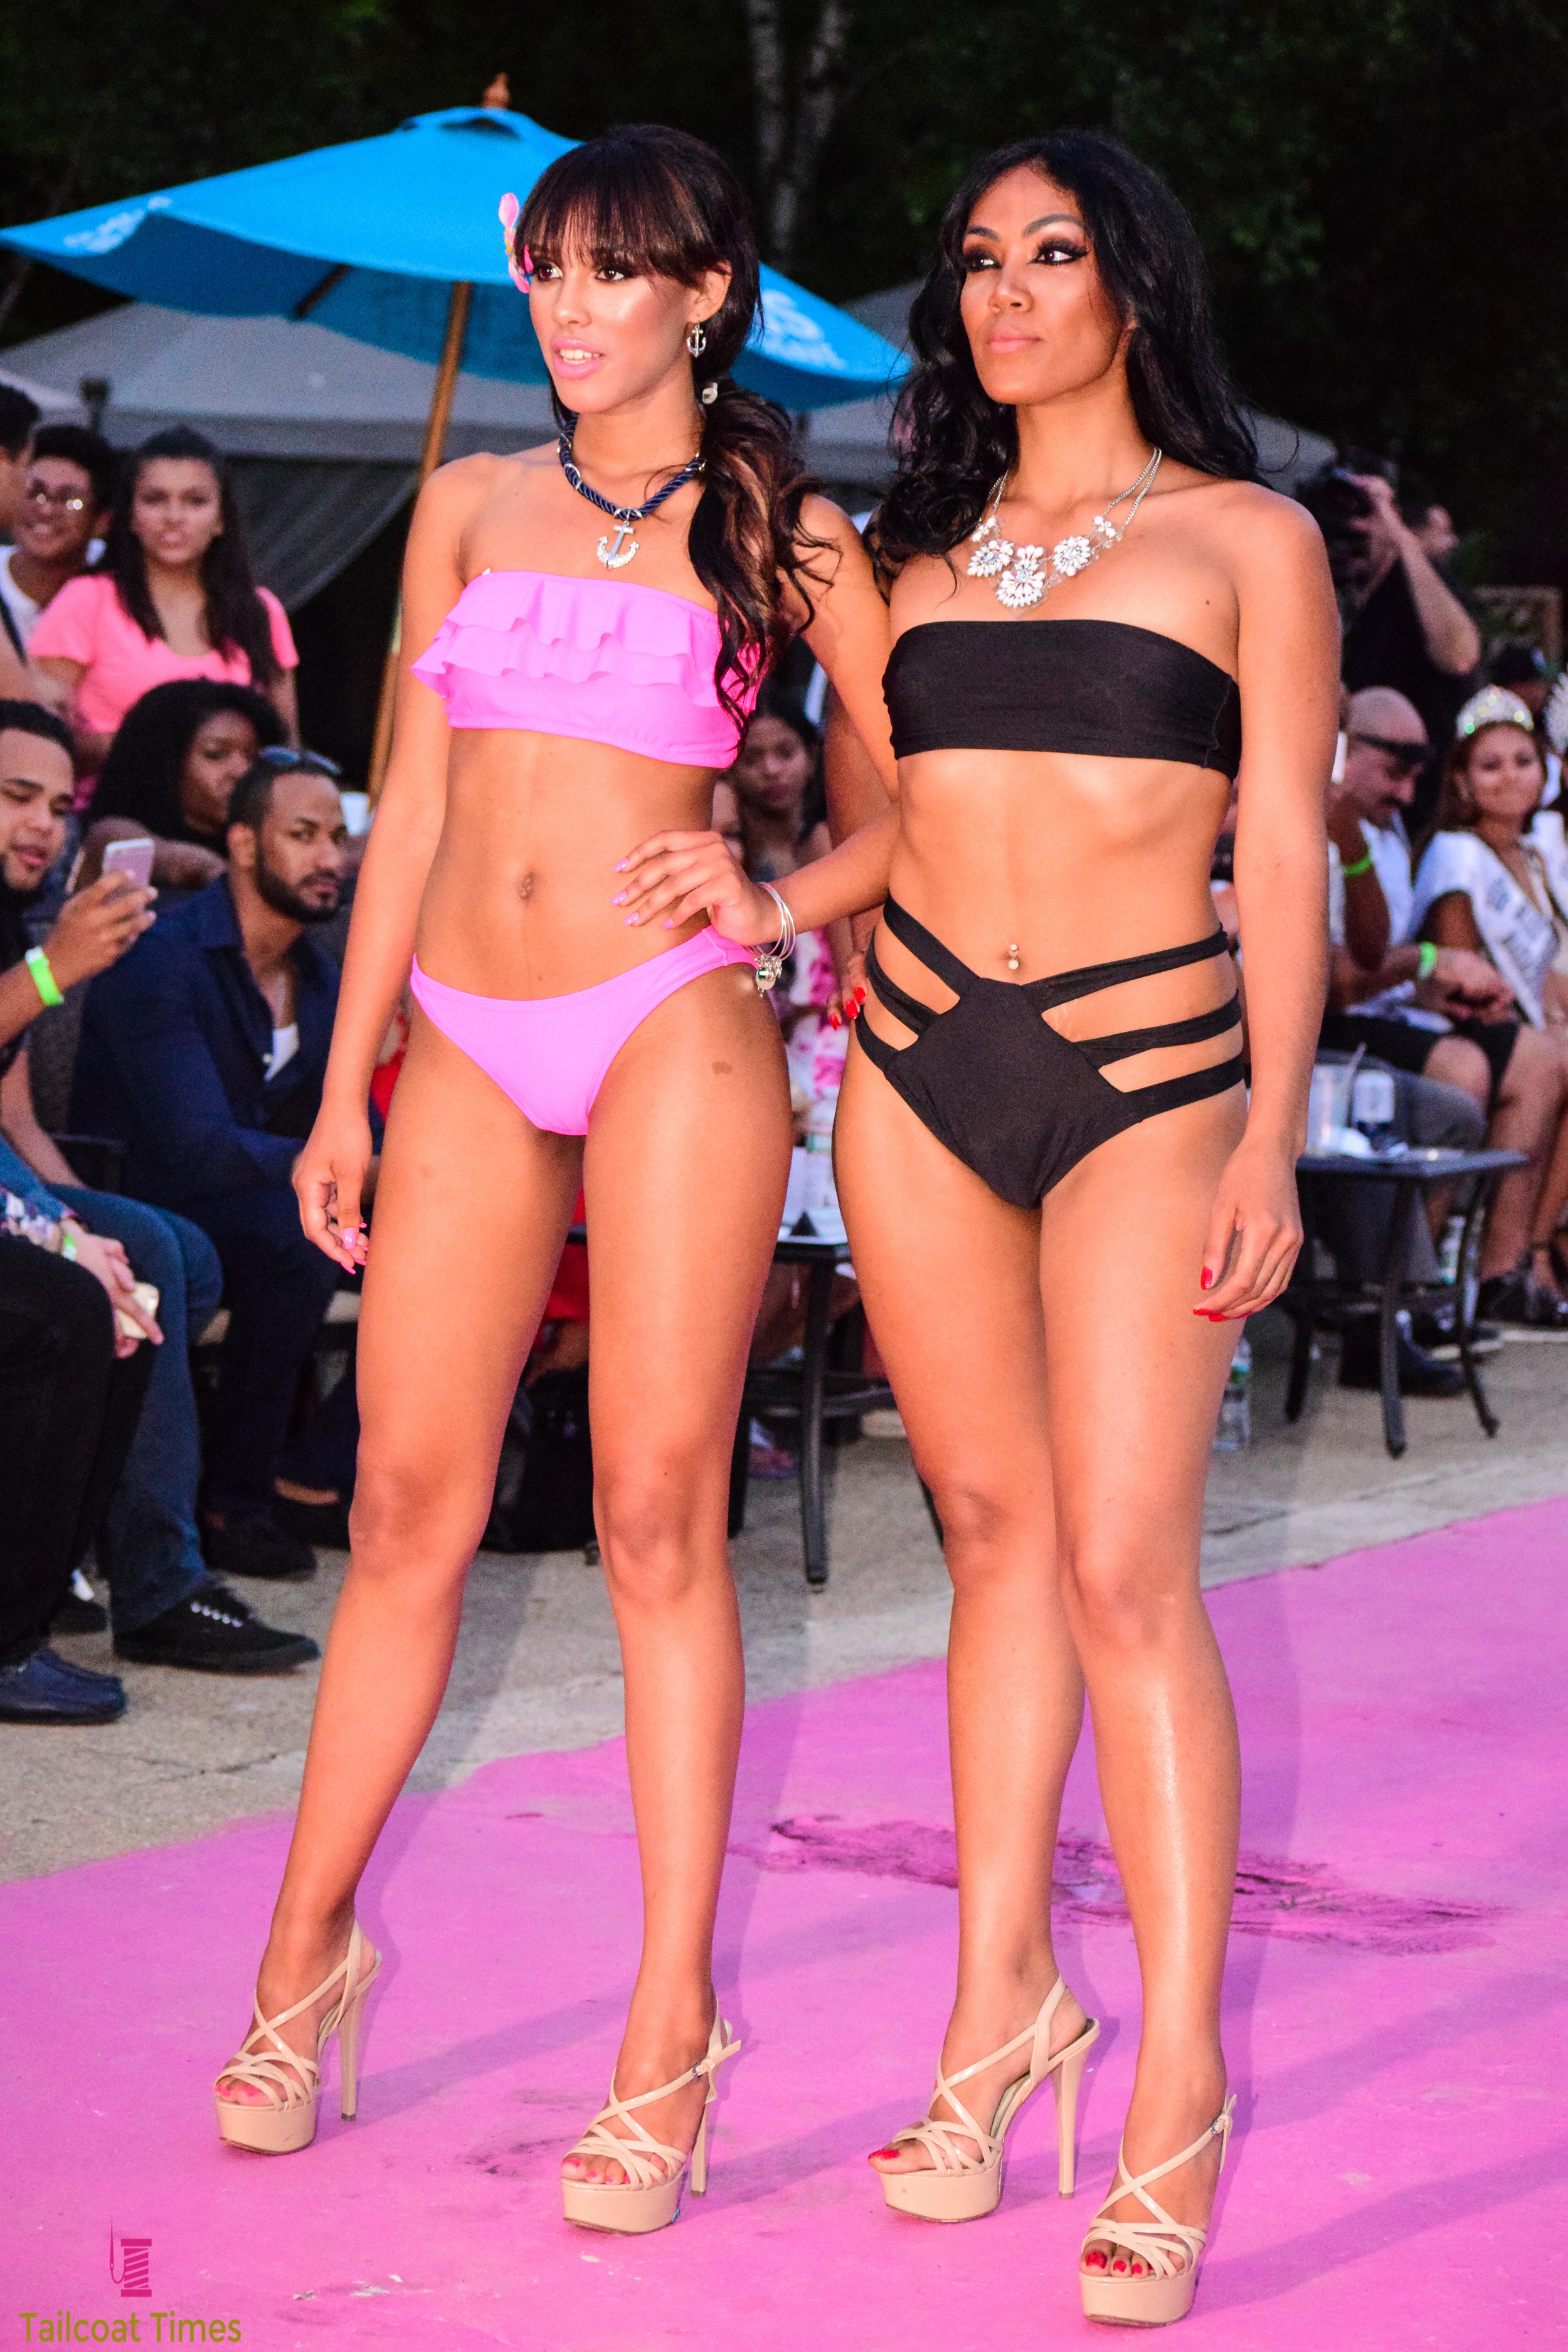 BrazilianFashionWeekUSA-226.jpg